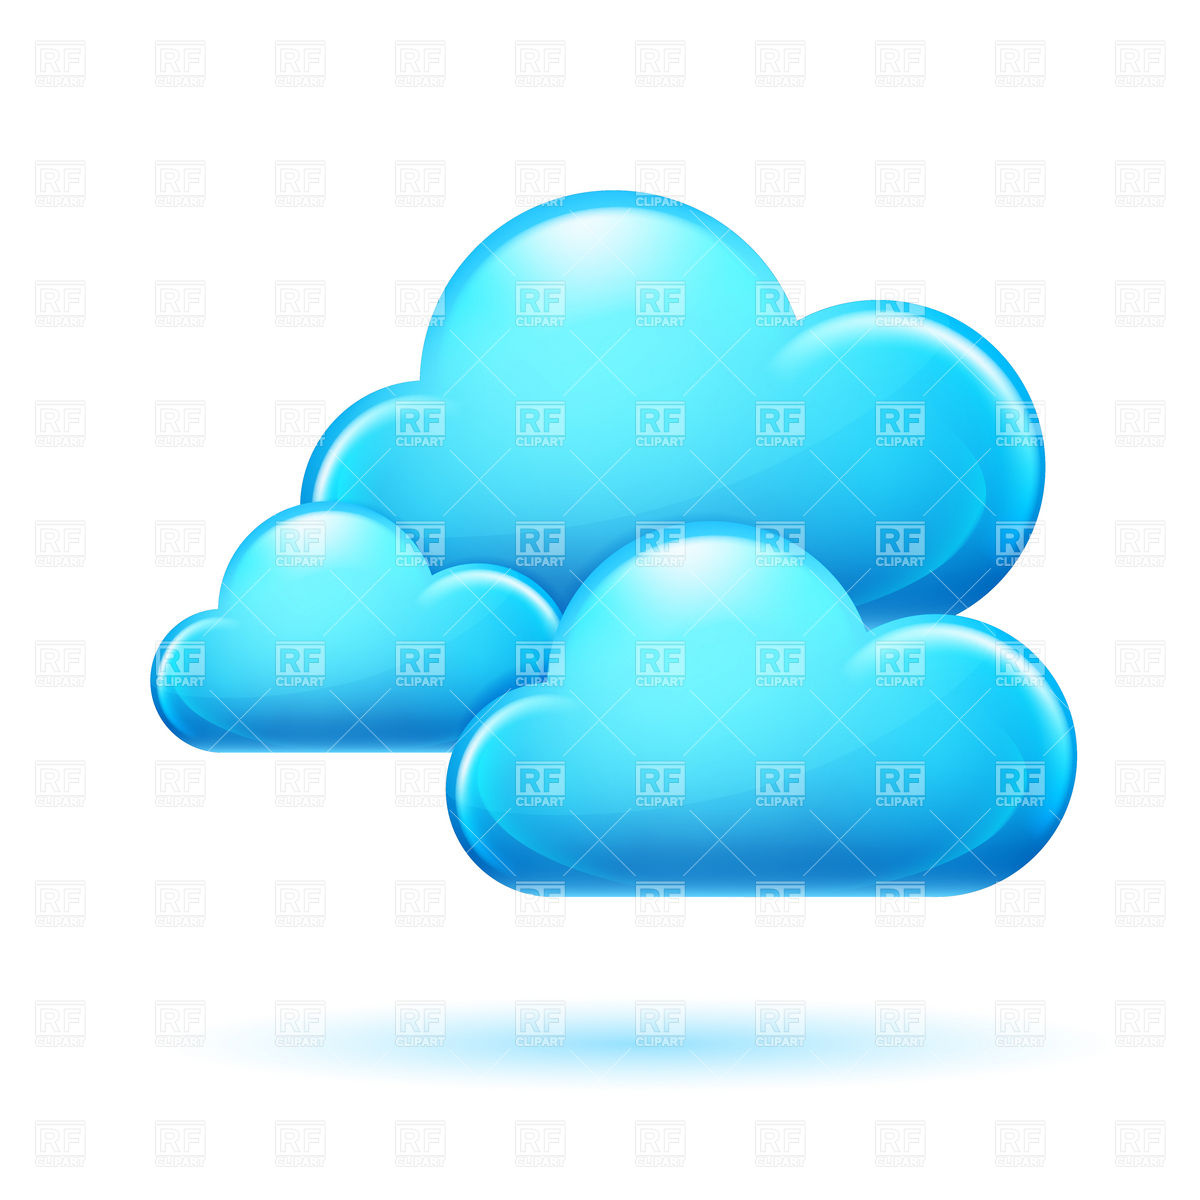 Blue Clouds Vector Image #6492.